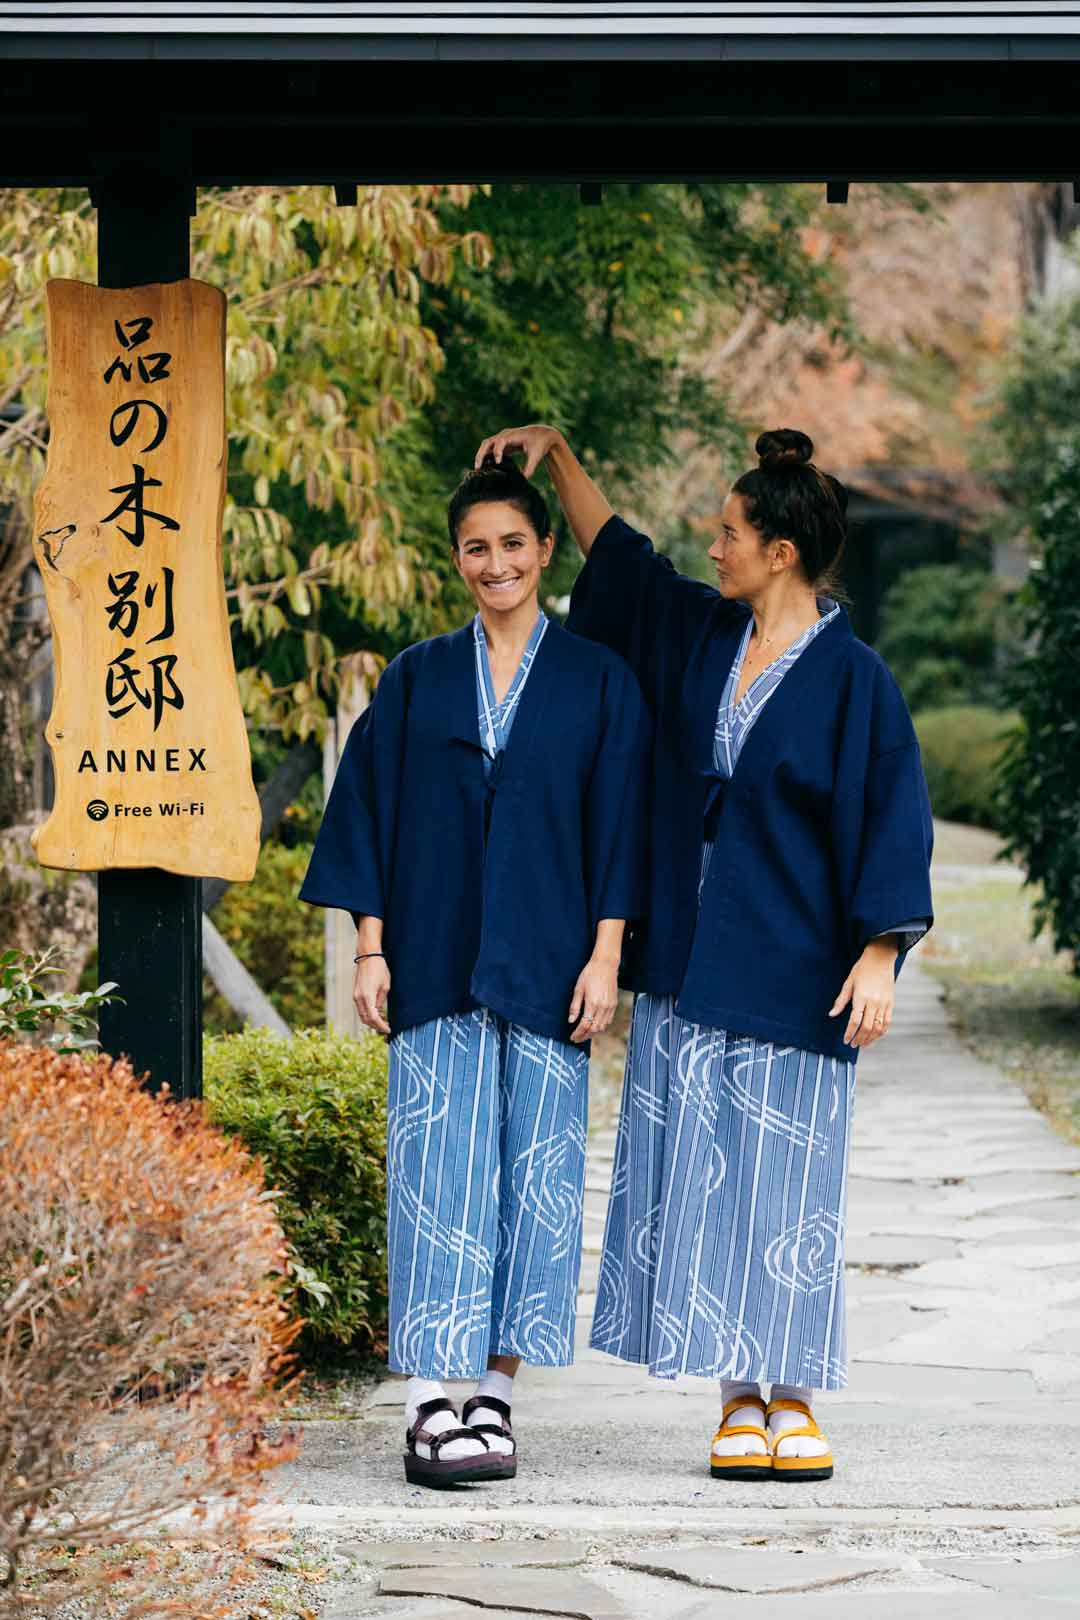 Two women dressed in matching outfits in Japan.